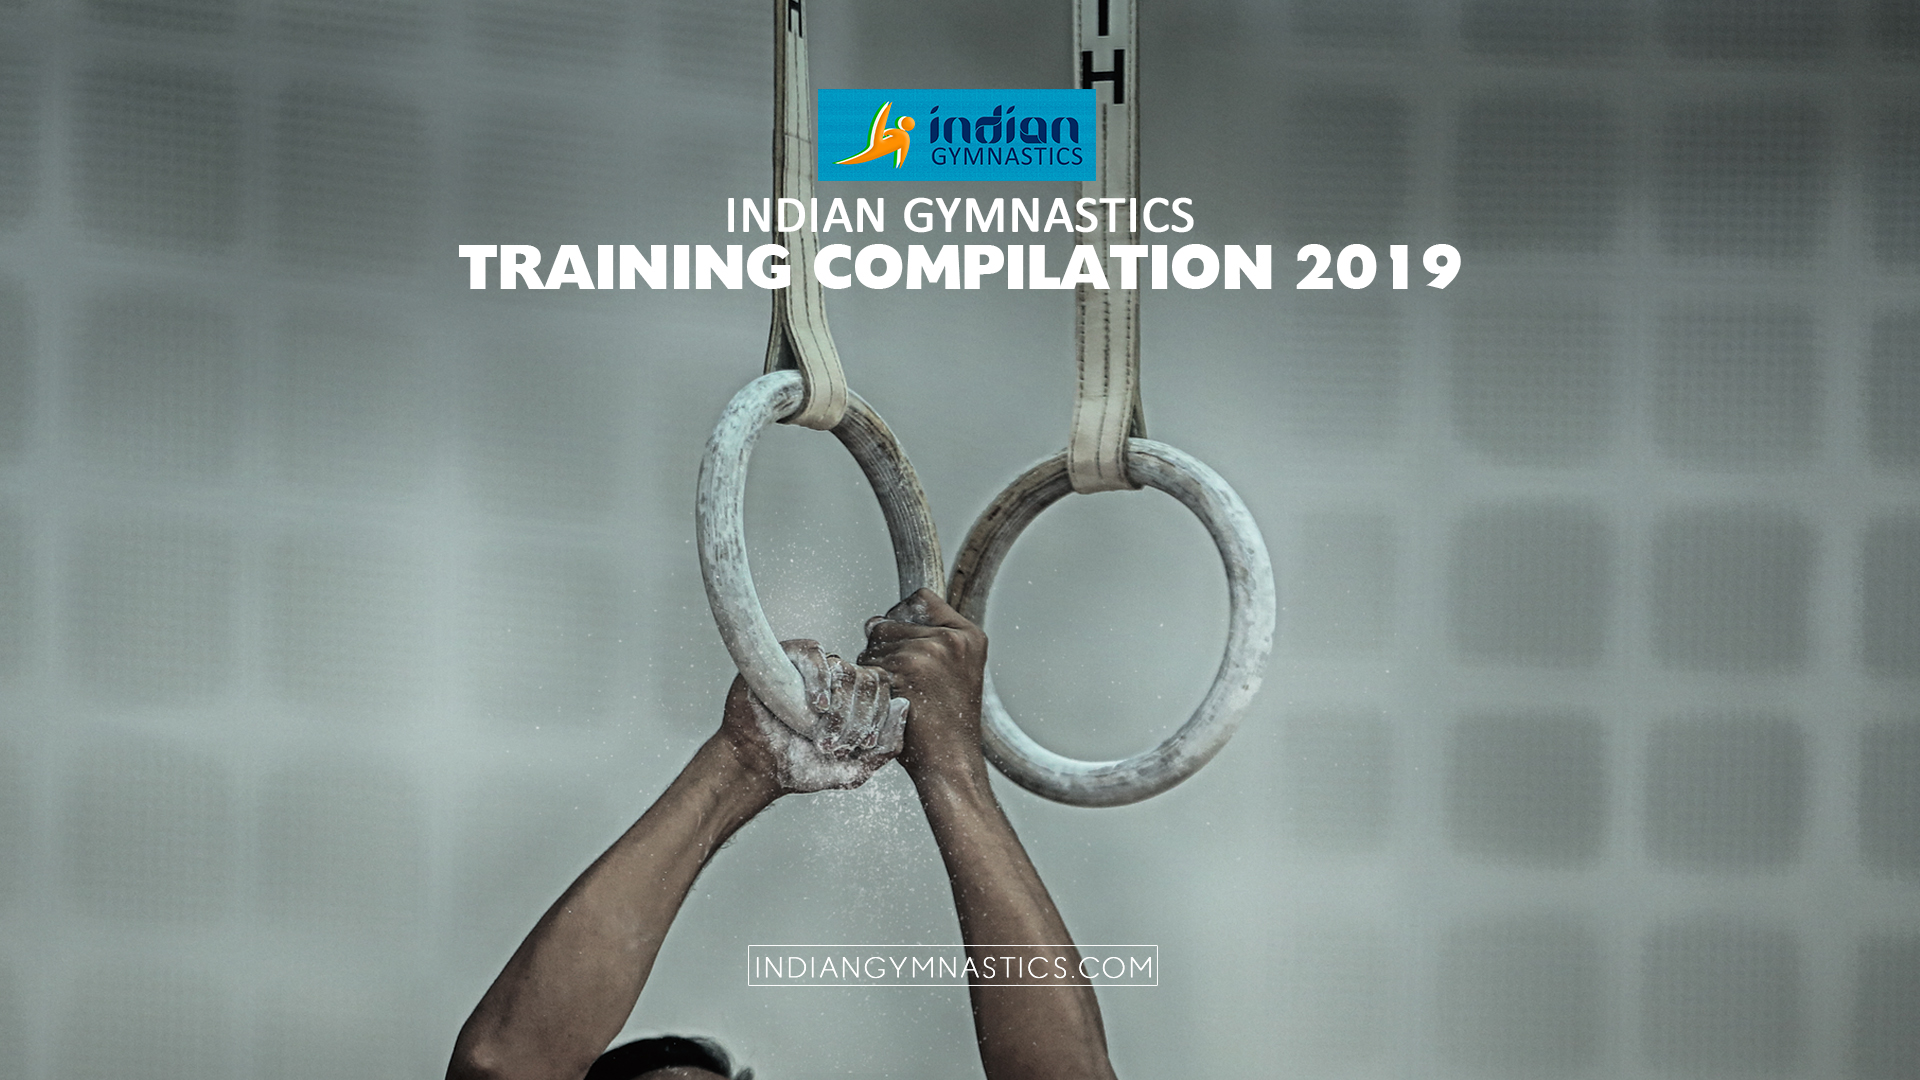 Indian Gymnastics | Training Compilation 2019